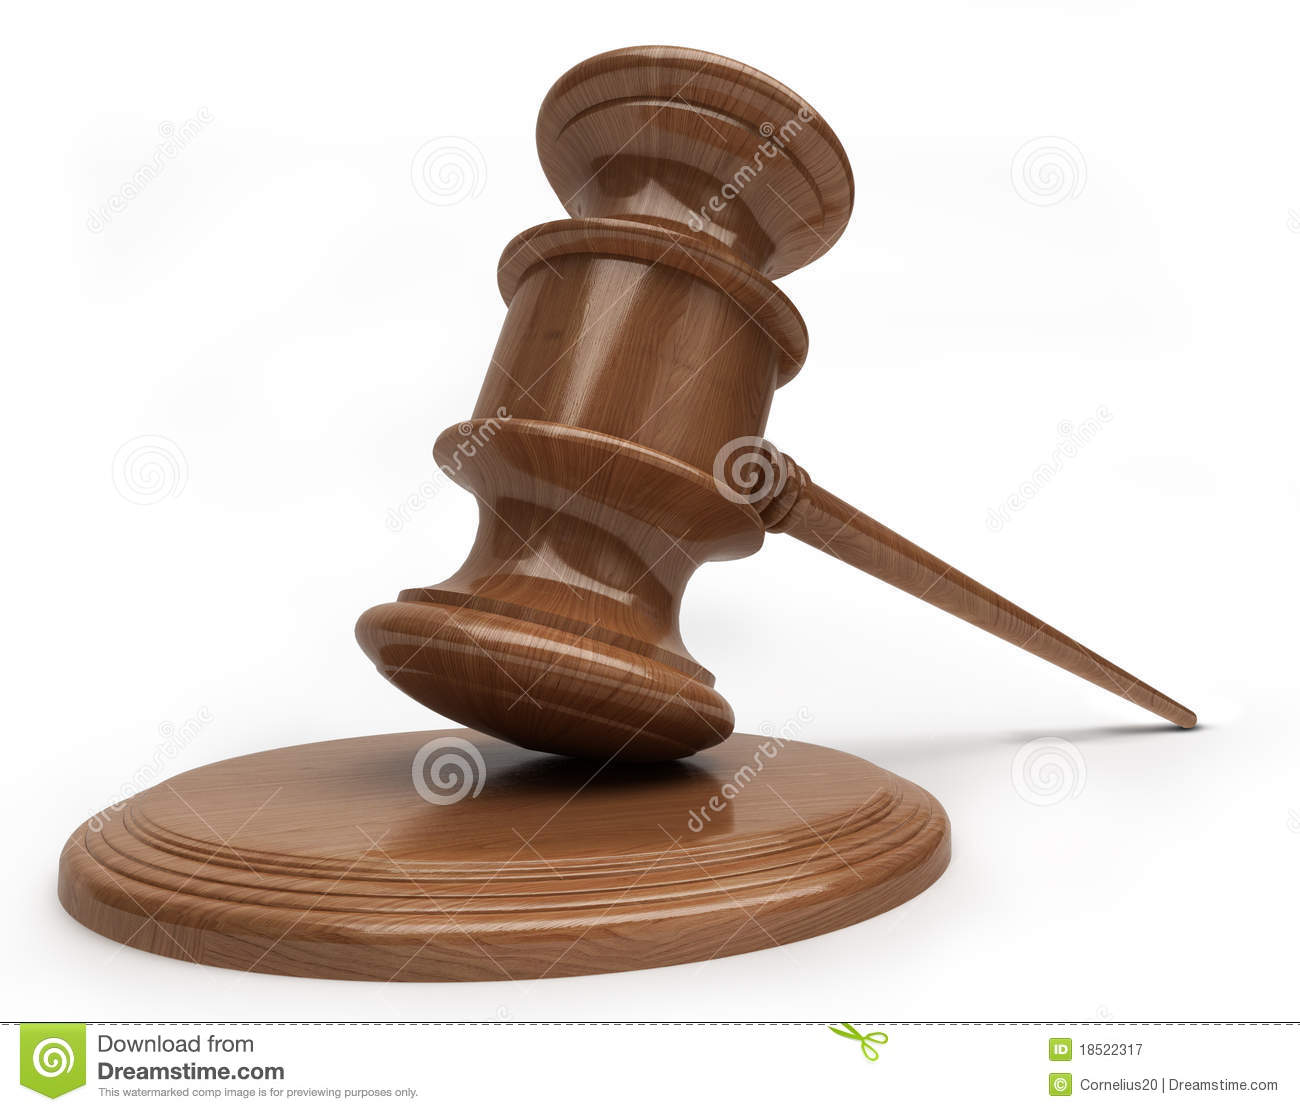 Judges Hammer Royalty Free Stock Photography - Image: 18522317